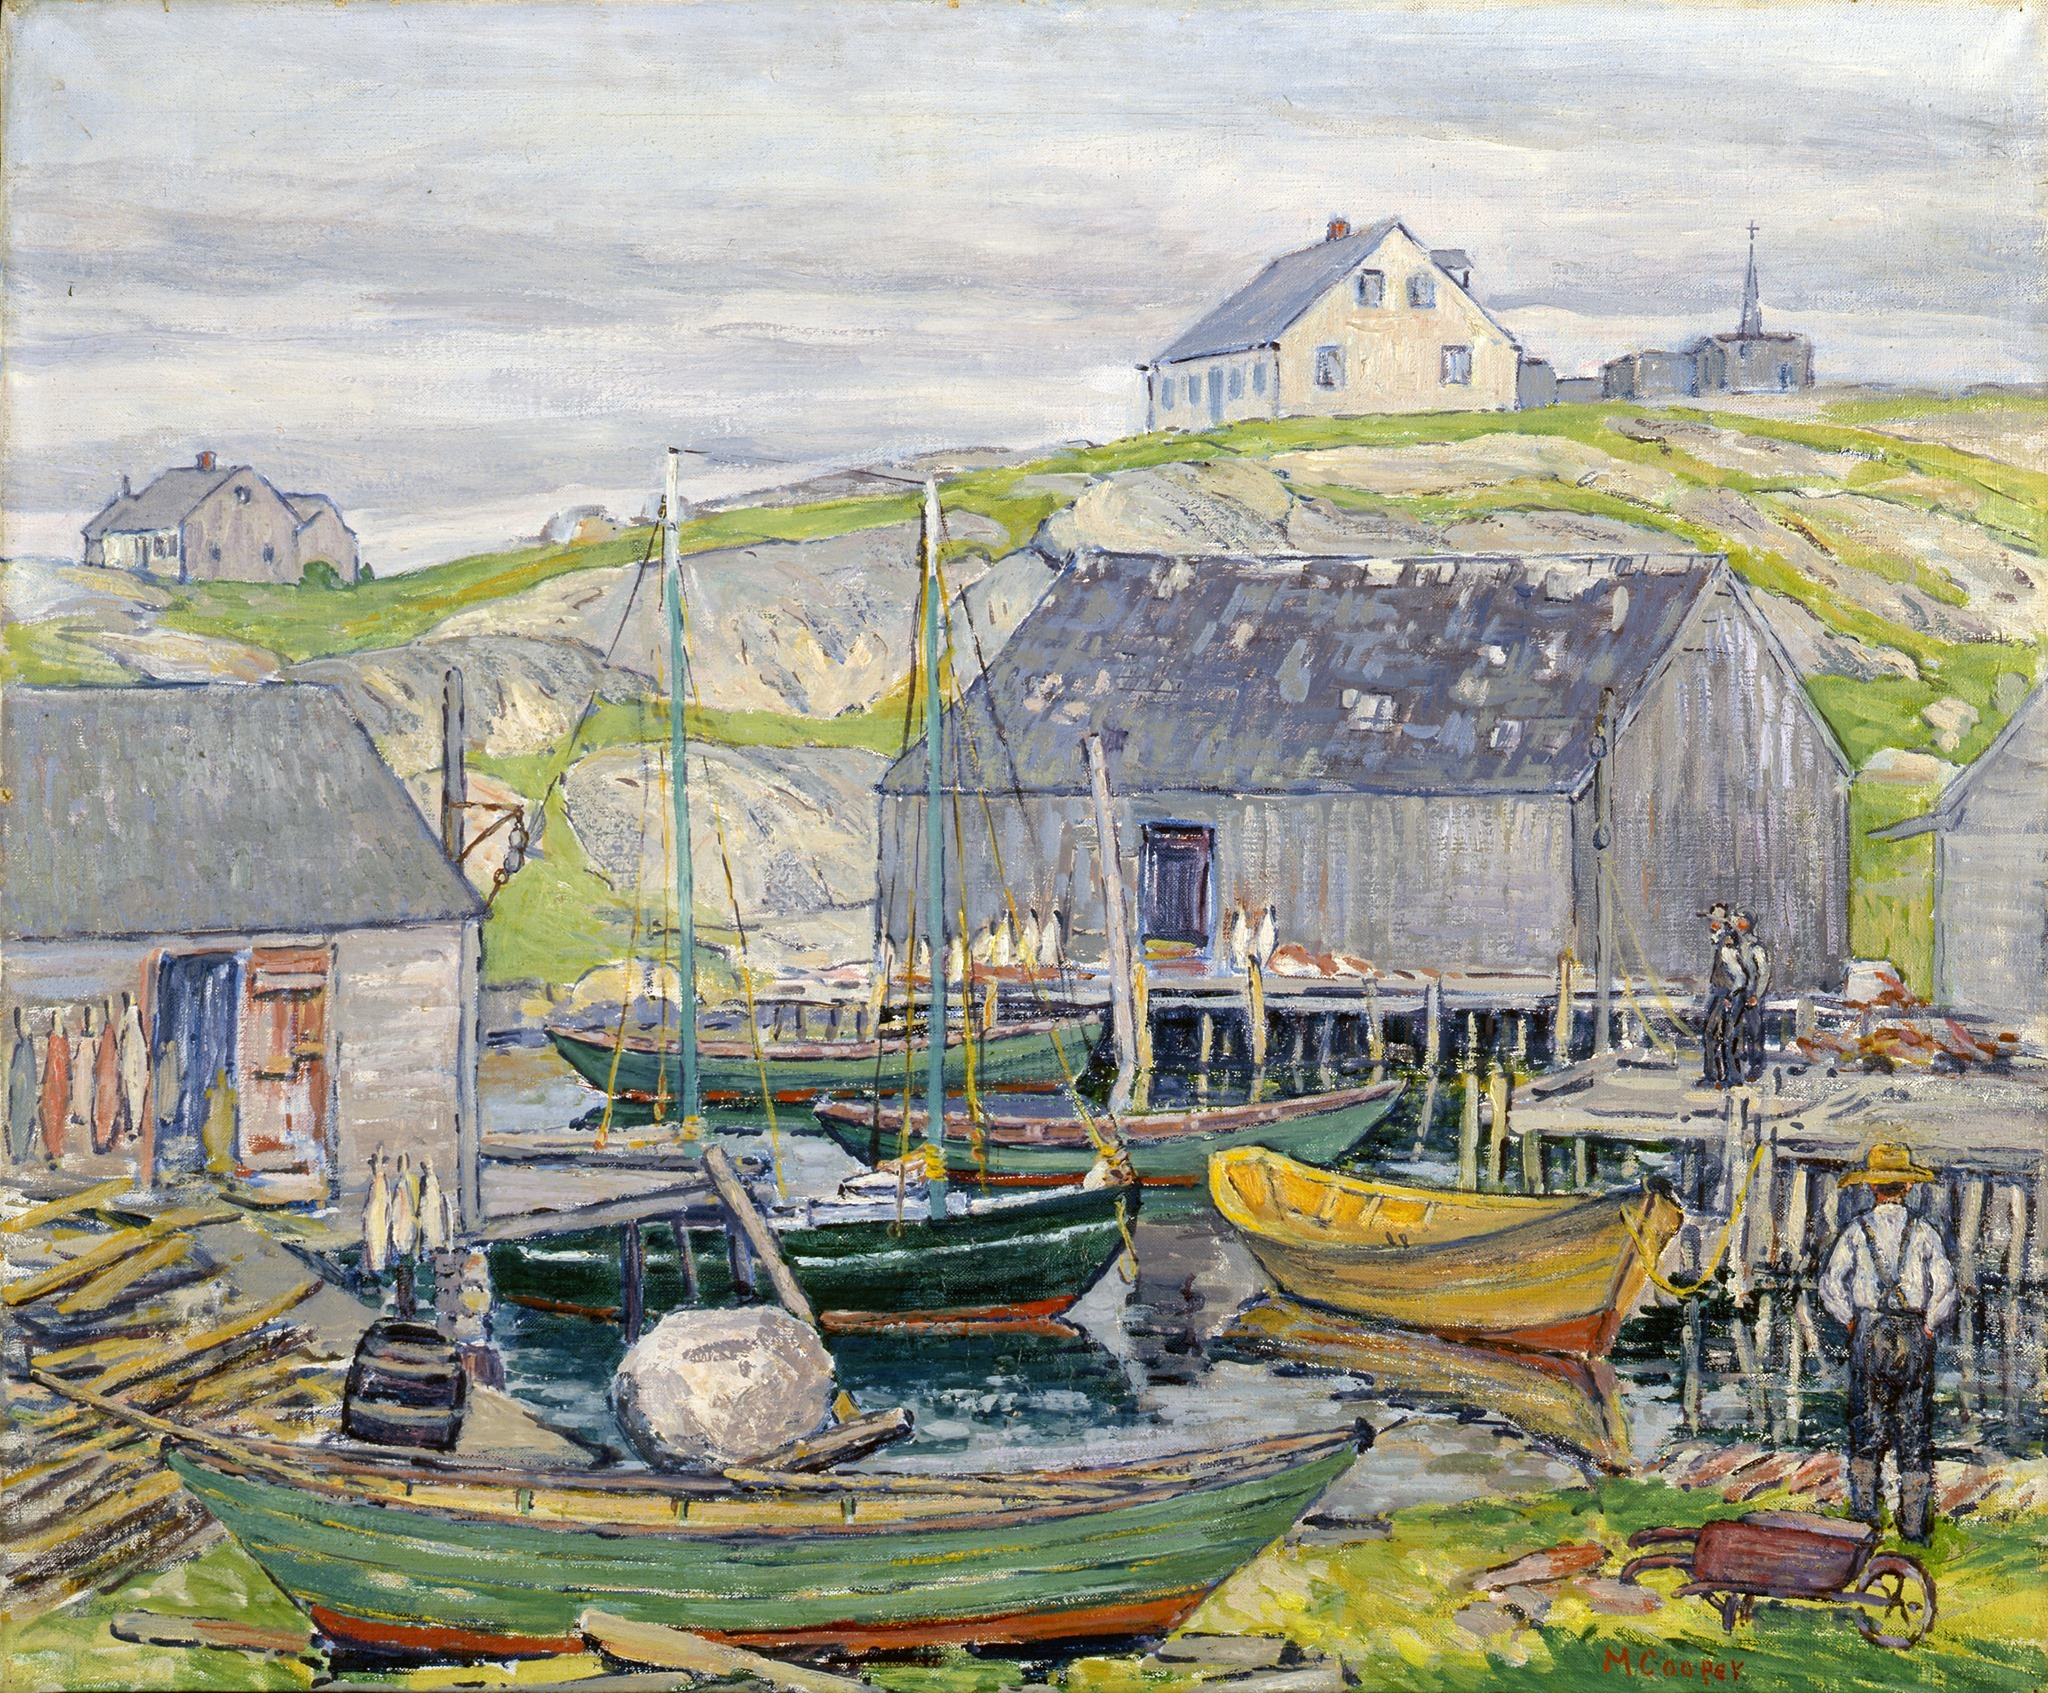 "Margaret Miller Cooper, <i>Fishing Boats, Nova Scotia</i>, Peggy's Cove,"" 1929, Oil on canvas, 25 x 30 in., Grace Judd Landers Fund"